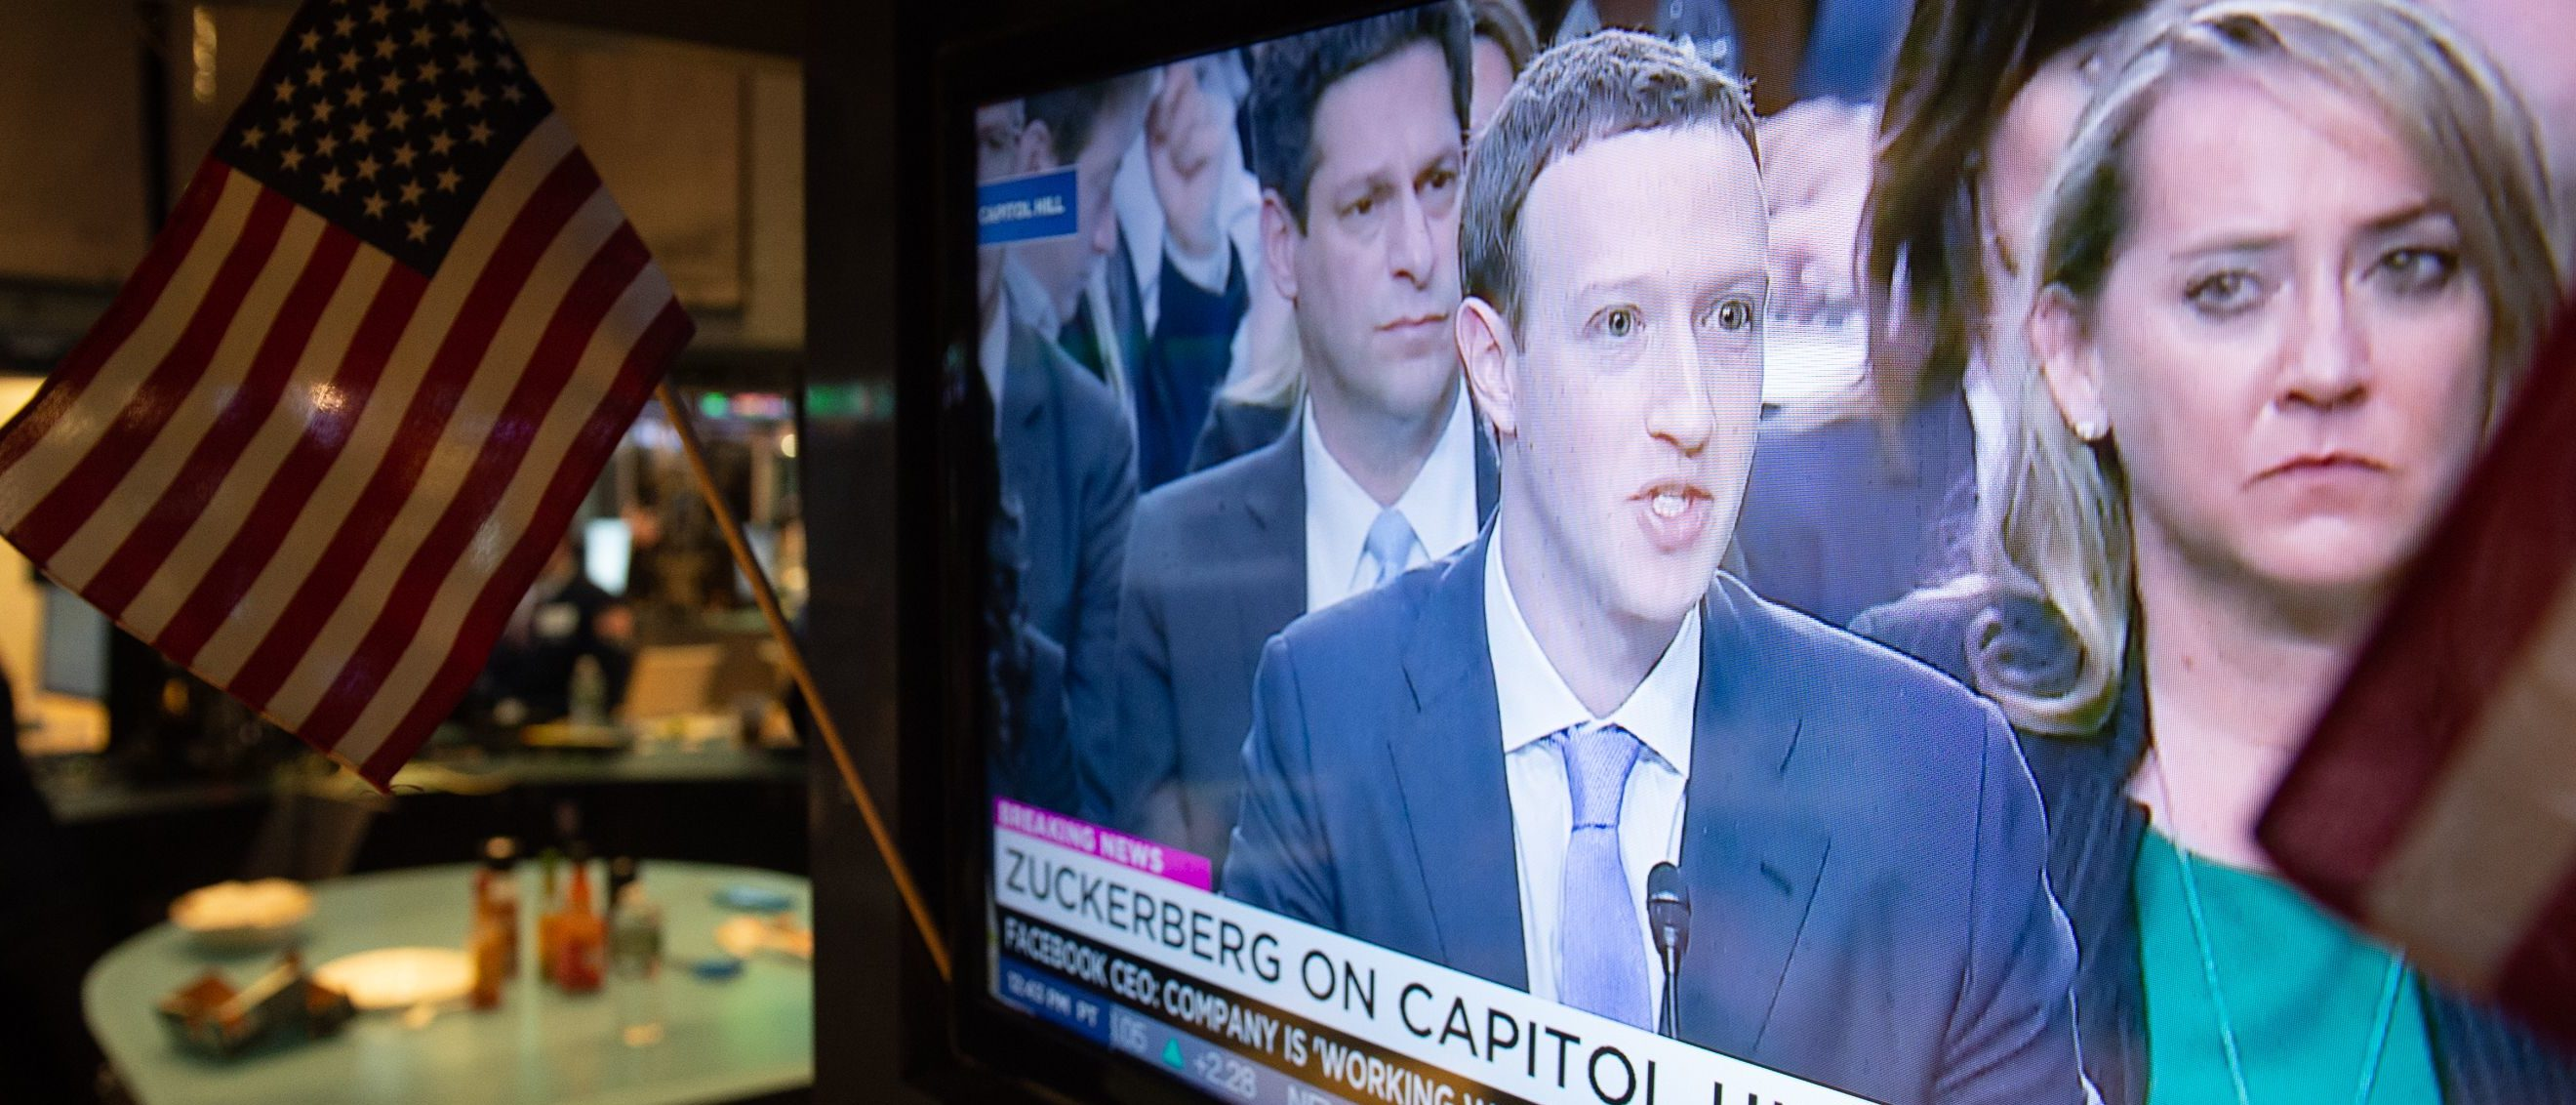 A broadcast of Facebook CEO Mark Zuckerberg testifying on Capital Hill is televised on the floor at the closing bell of the Dow Industrial Average at the New York Stock Exchange on April 10, 2018 in New York. / AFP PHOTO / Bryan R. Smith (Photo credit should read BRYAN R. SMITH/AFP/Getty Images)